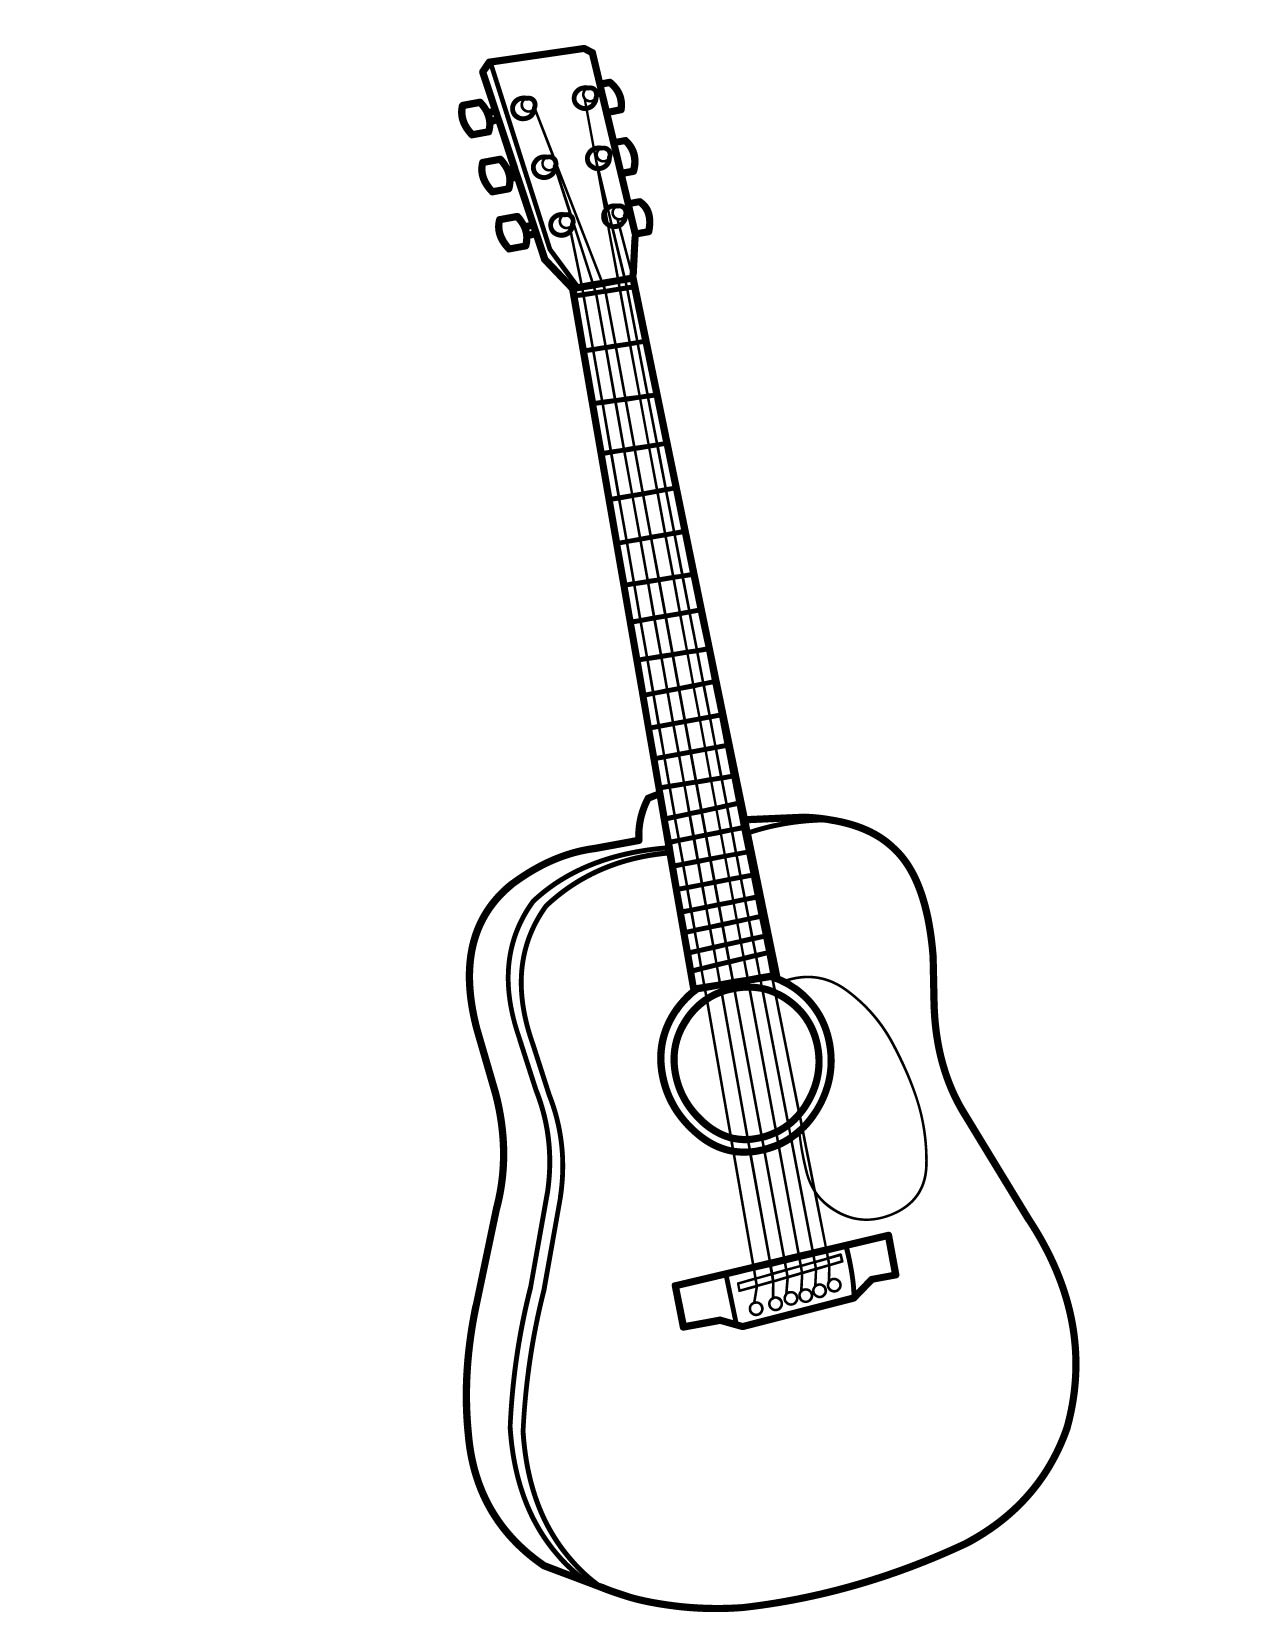 Guitar Coloring Pages Pdf : Guitar coloring pages for kids print color craft